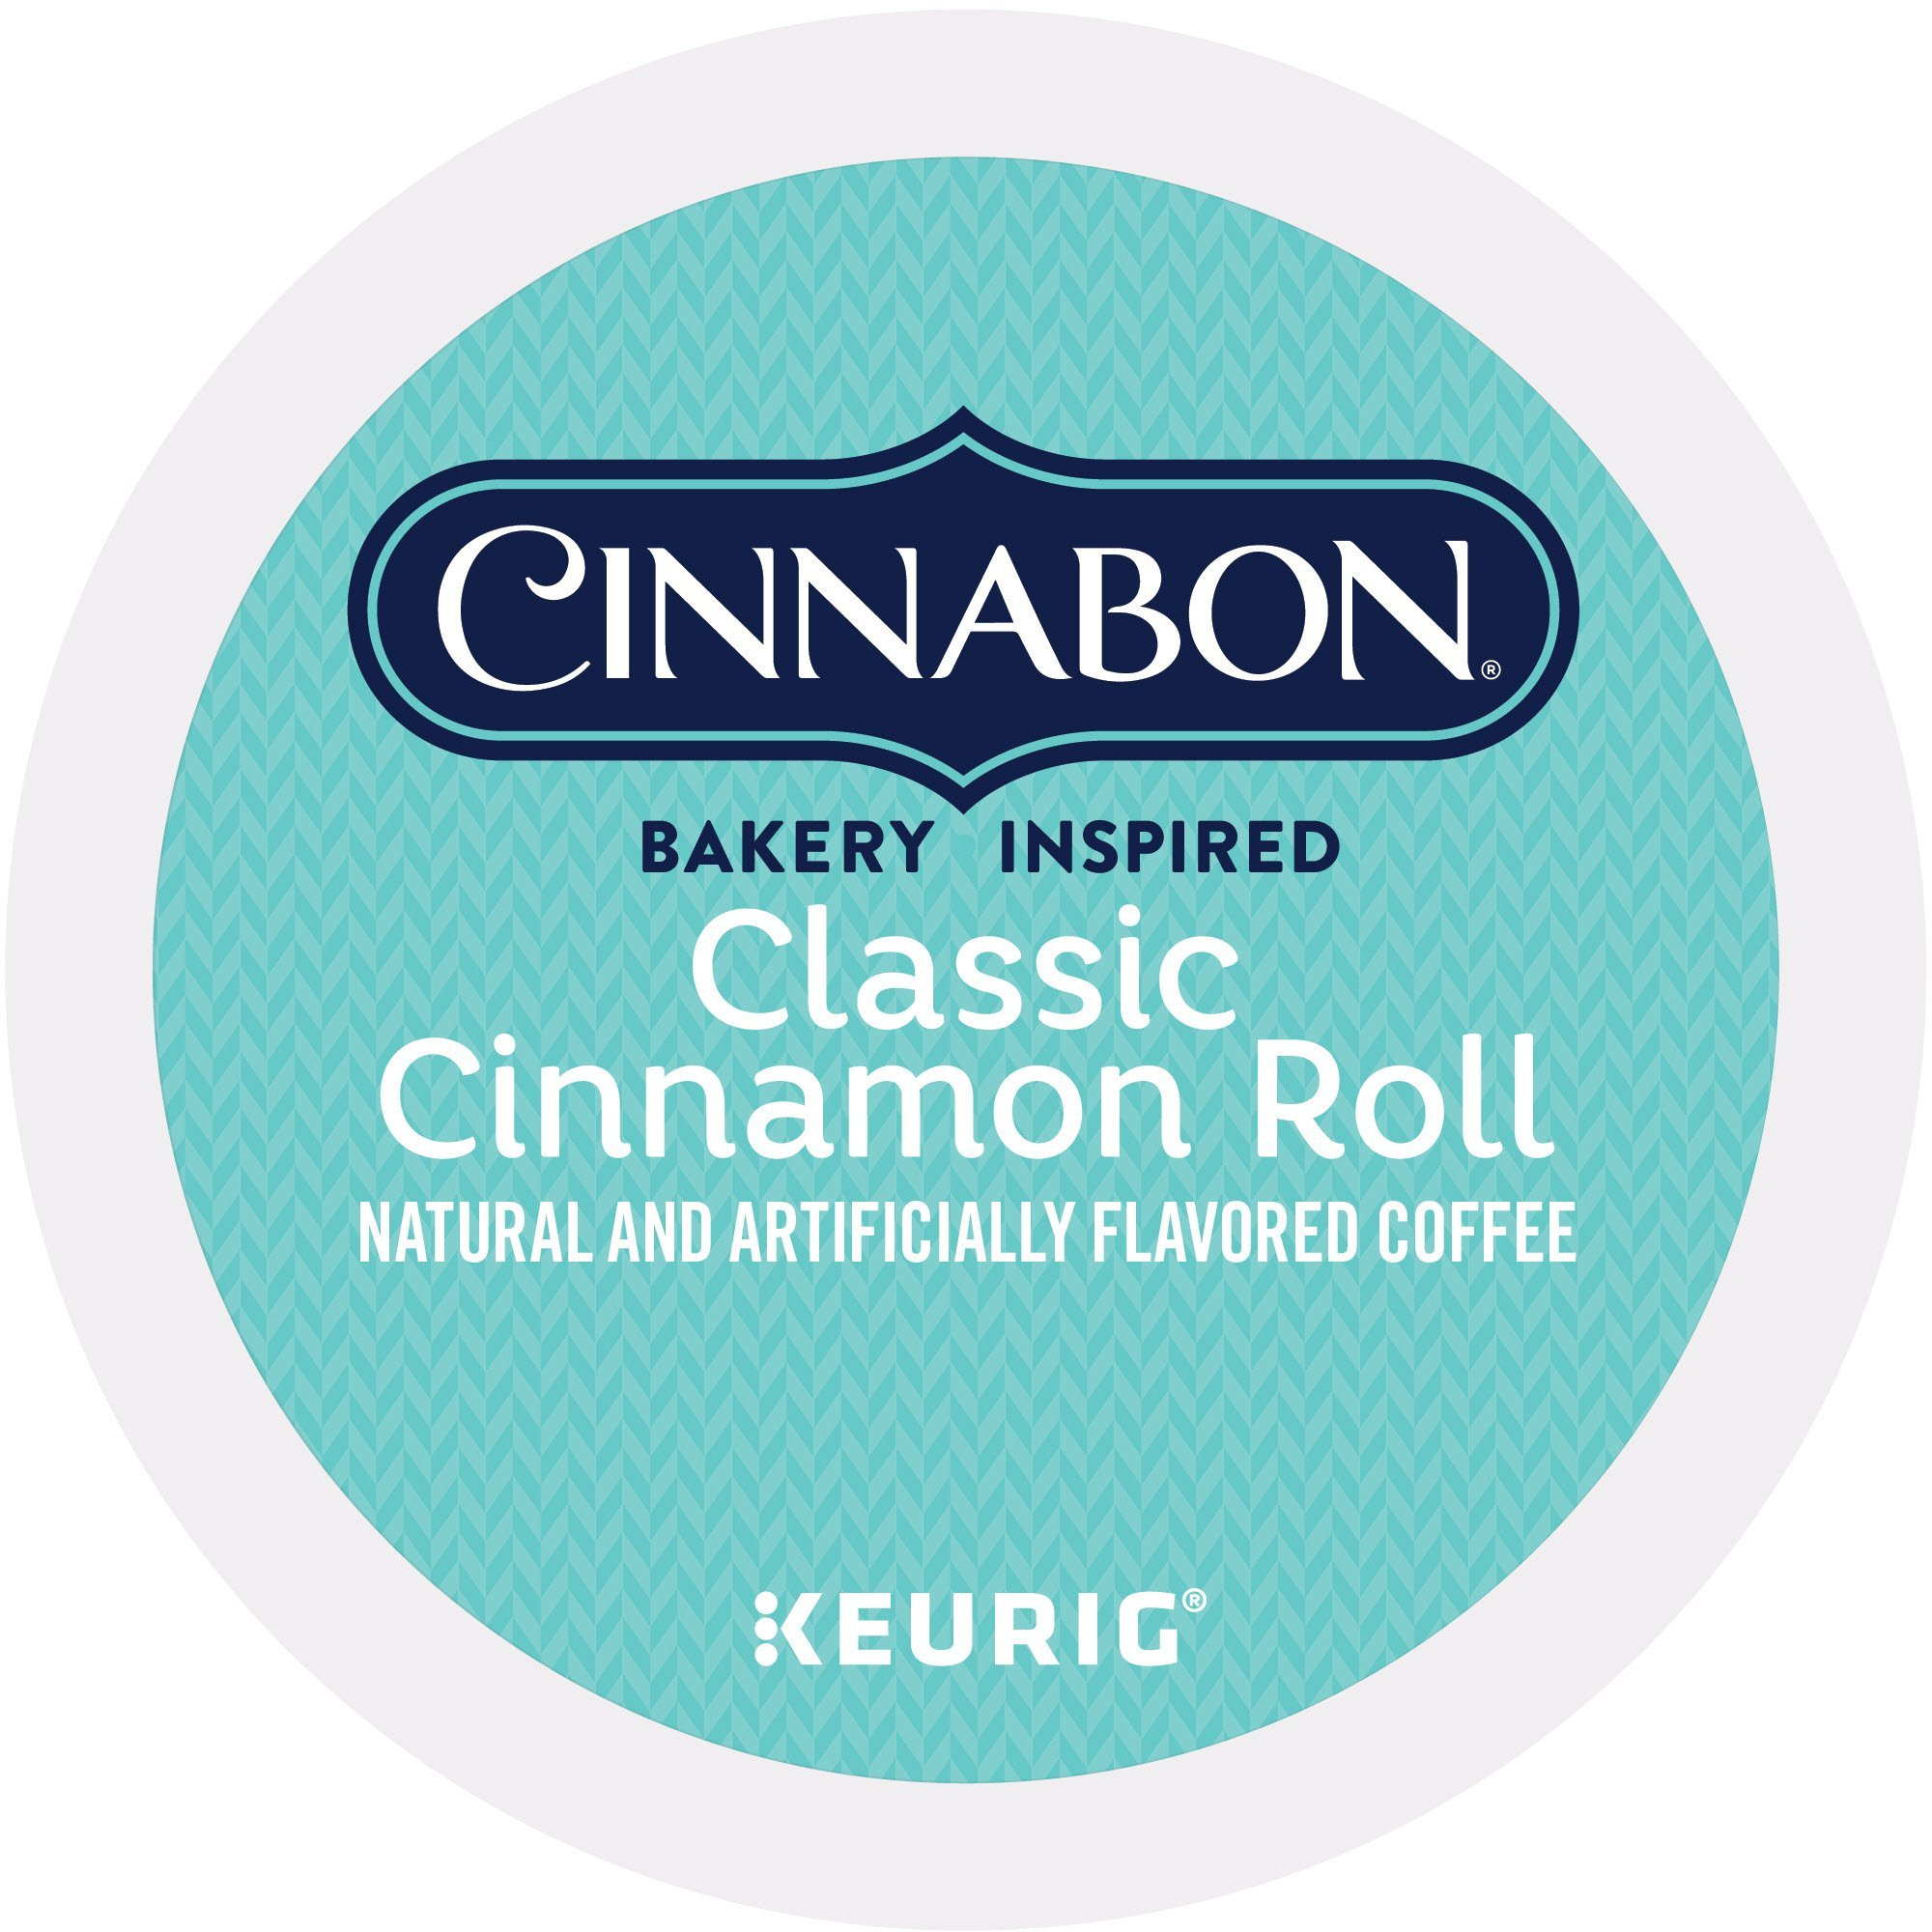 Cinnabon Classic Cinnamon Roll Coffee Keurig Single-Serve K-Cup Pods, 72 Count (6 Boxes of 12 Pods)